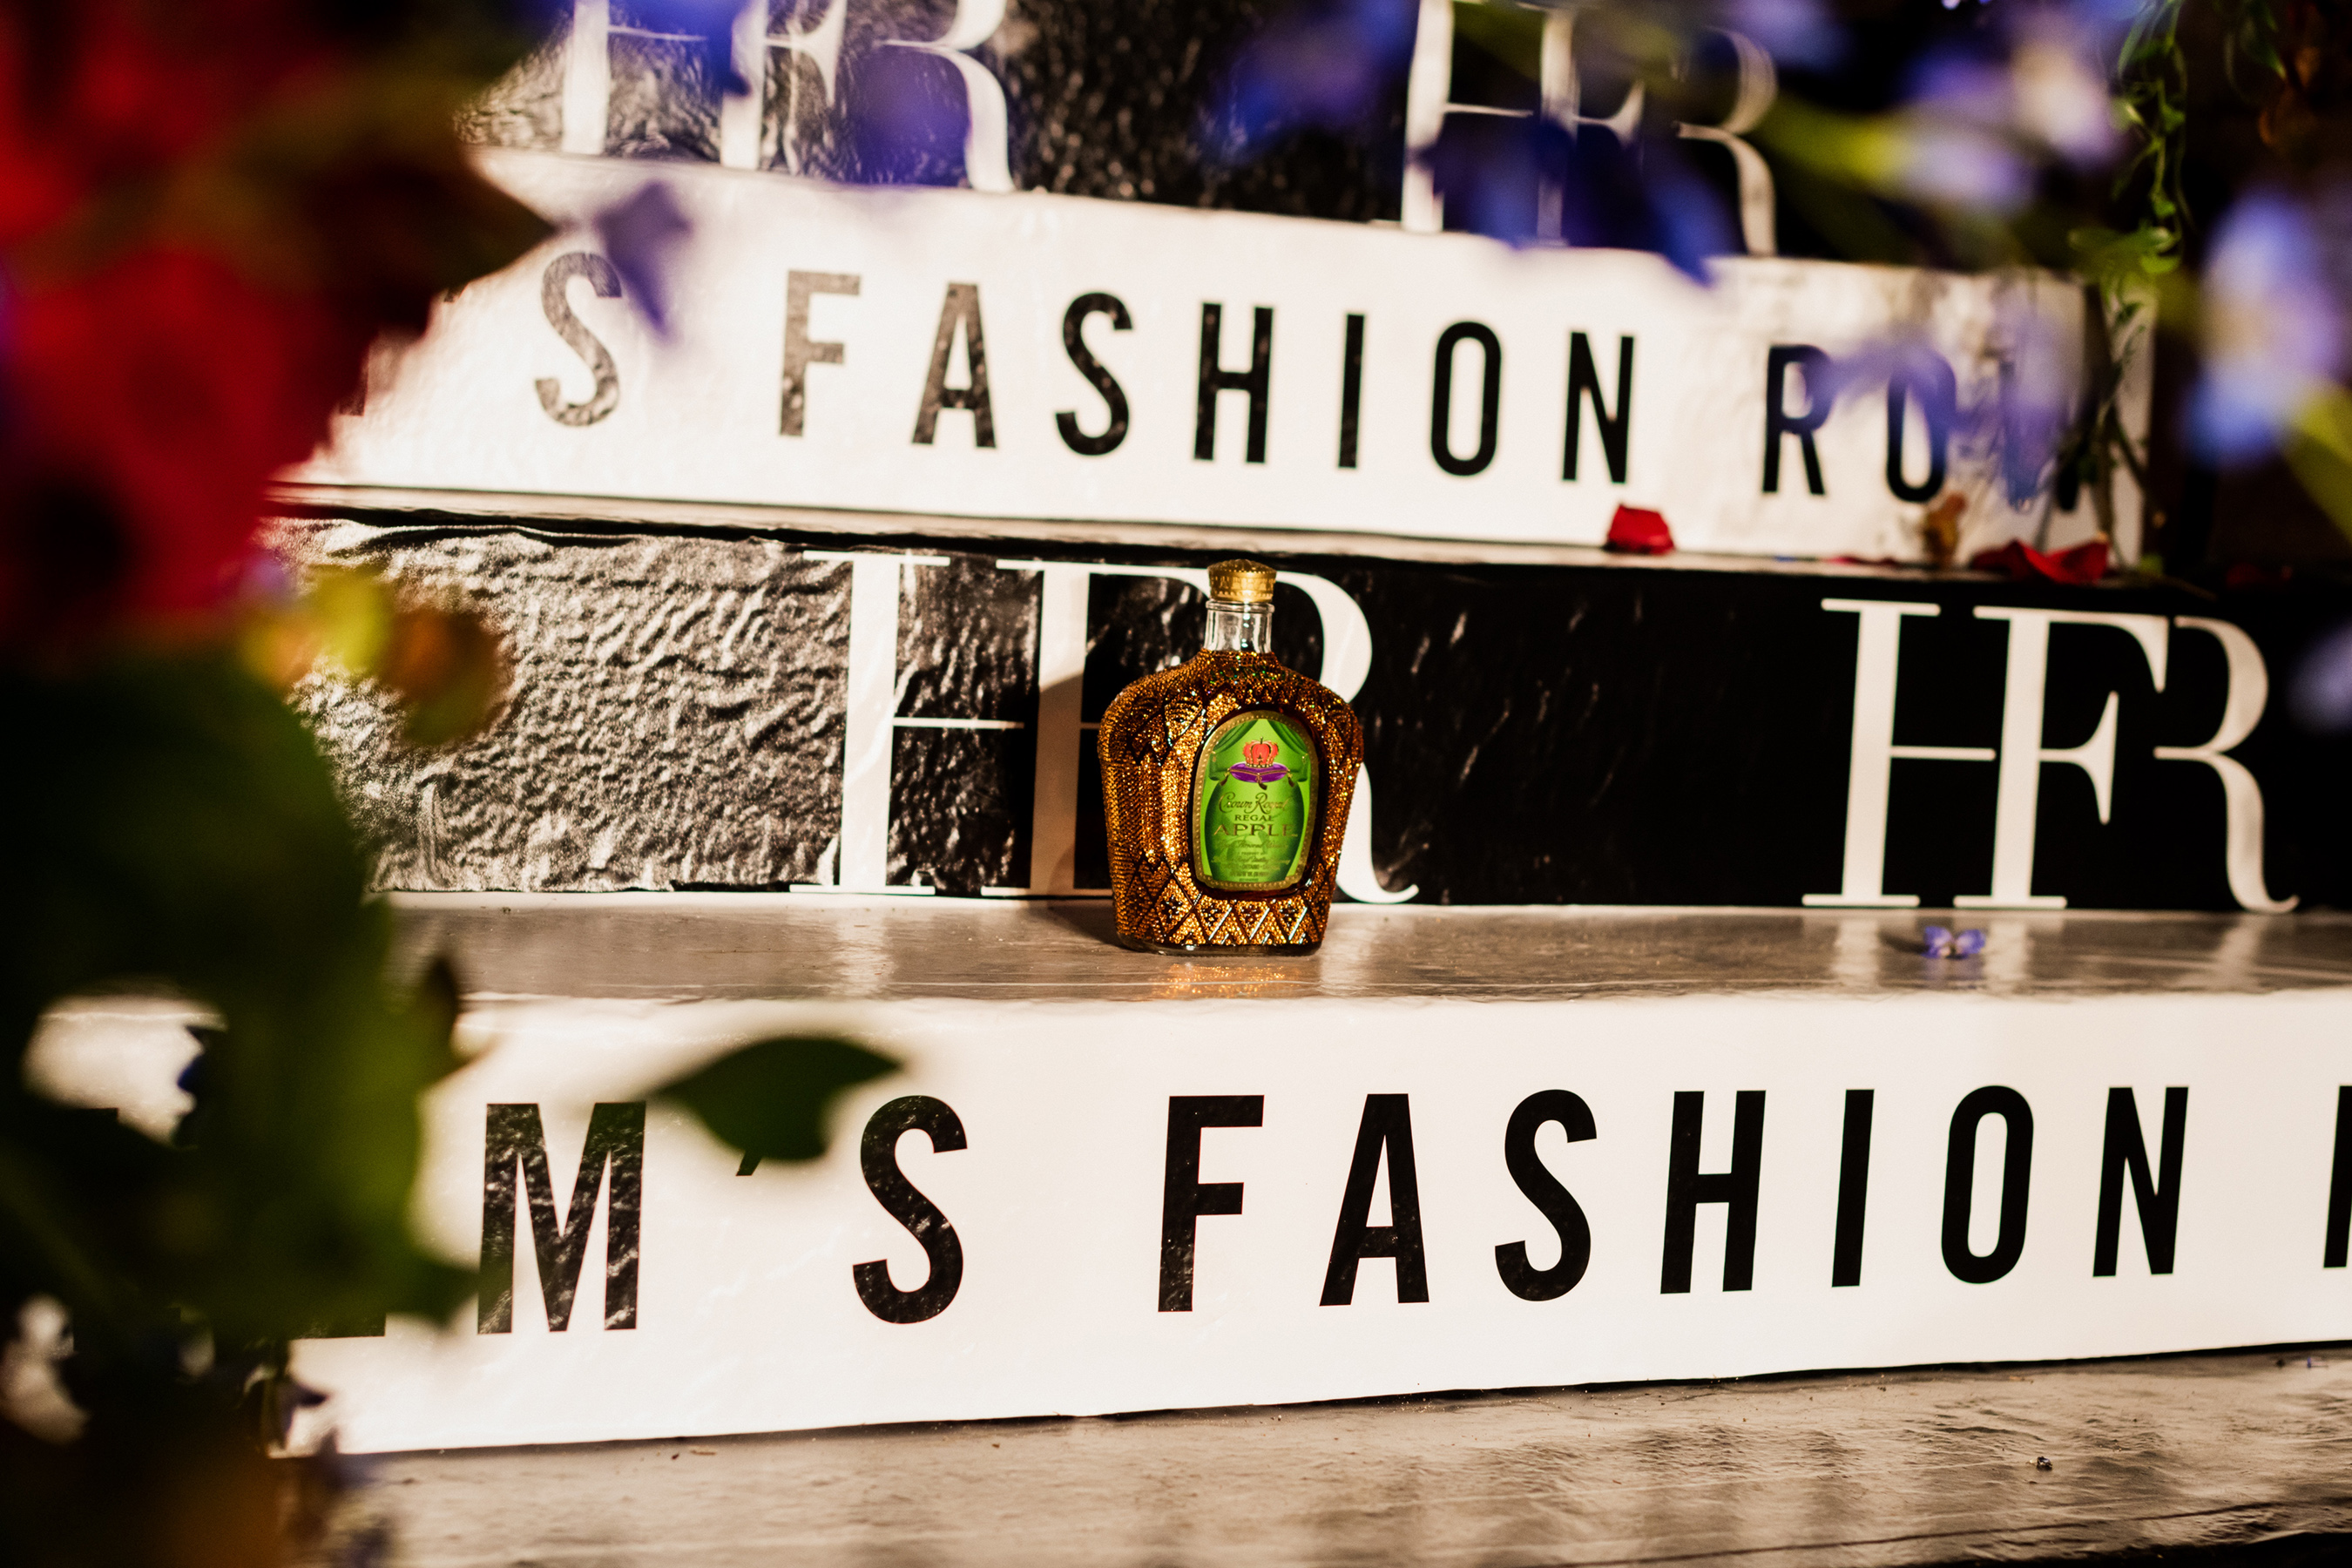 Crown Royal Regal Apple celebrates Black excellence and designers who were awarded a $10,000 grant and a customized Crown Royal bottle during HFR's Style Awards at New York Fashion Week.